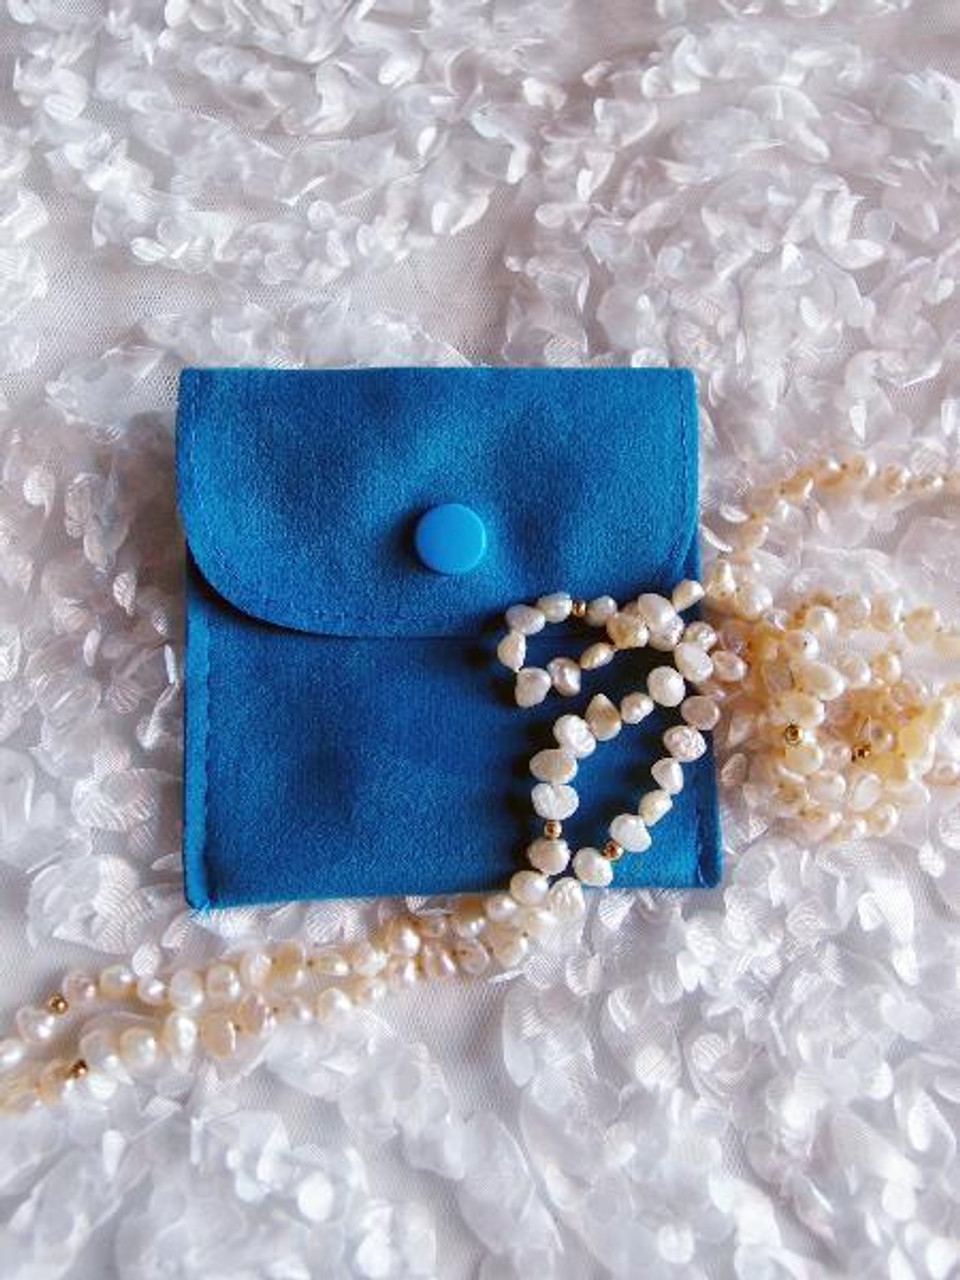 Wholesale Velvet Jewelry Bags, Peacock Blue Velvet Jewelry Pouch with Snap Fastener 3 x 3 inches J134-85   Packaging Decor